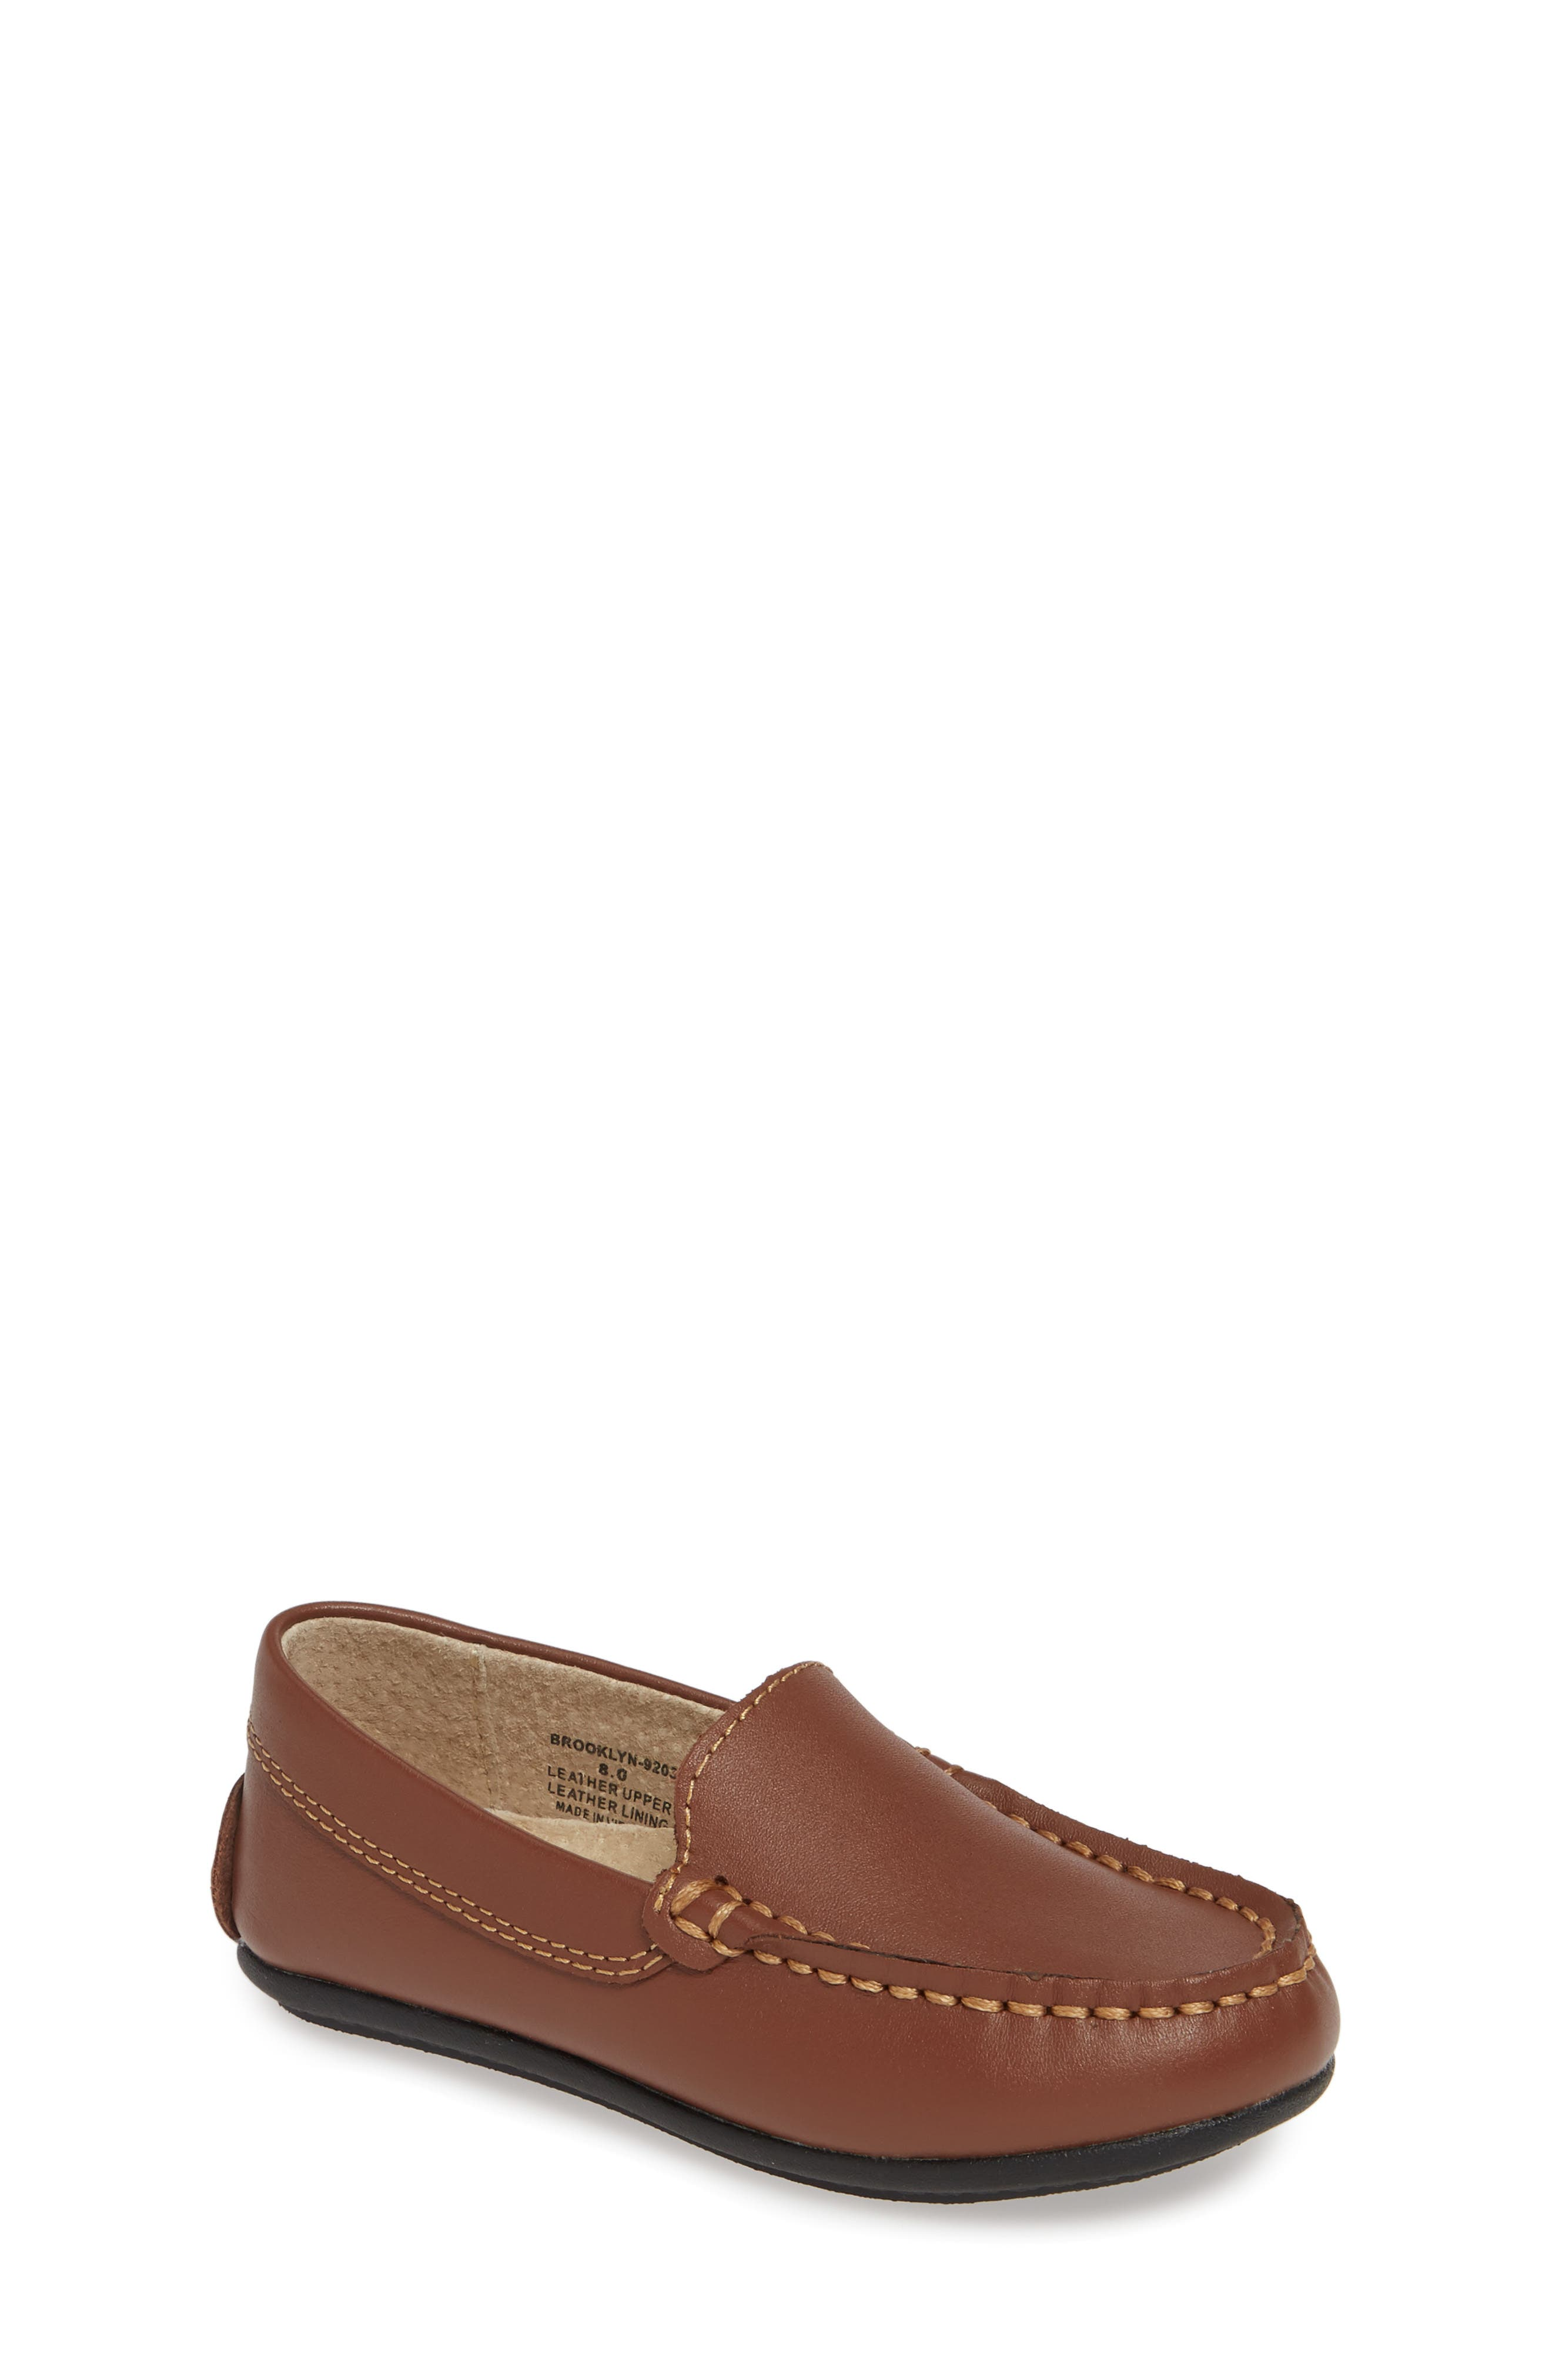 Made from supple leather, this charming loafer features a cushioned insole that will keep him comfortable with every step he takes. Style Name: Footmates Brooklyn Loafer (Walker, Toddler, Little Kid & Big Kid). Style Number: 5794327. Available in stores.